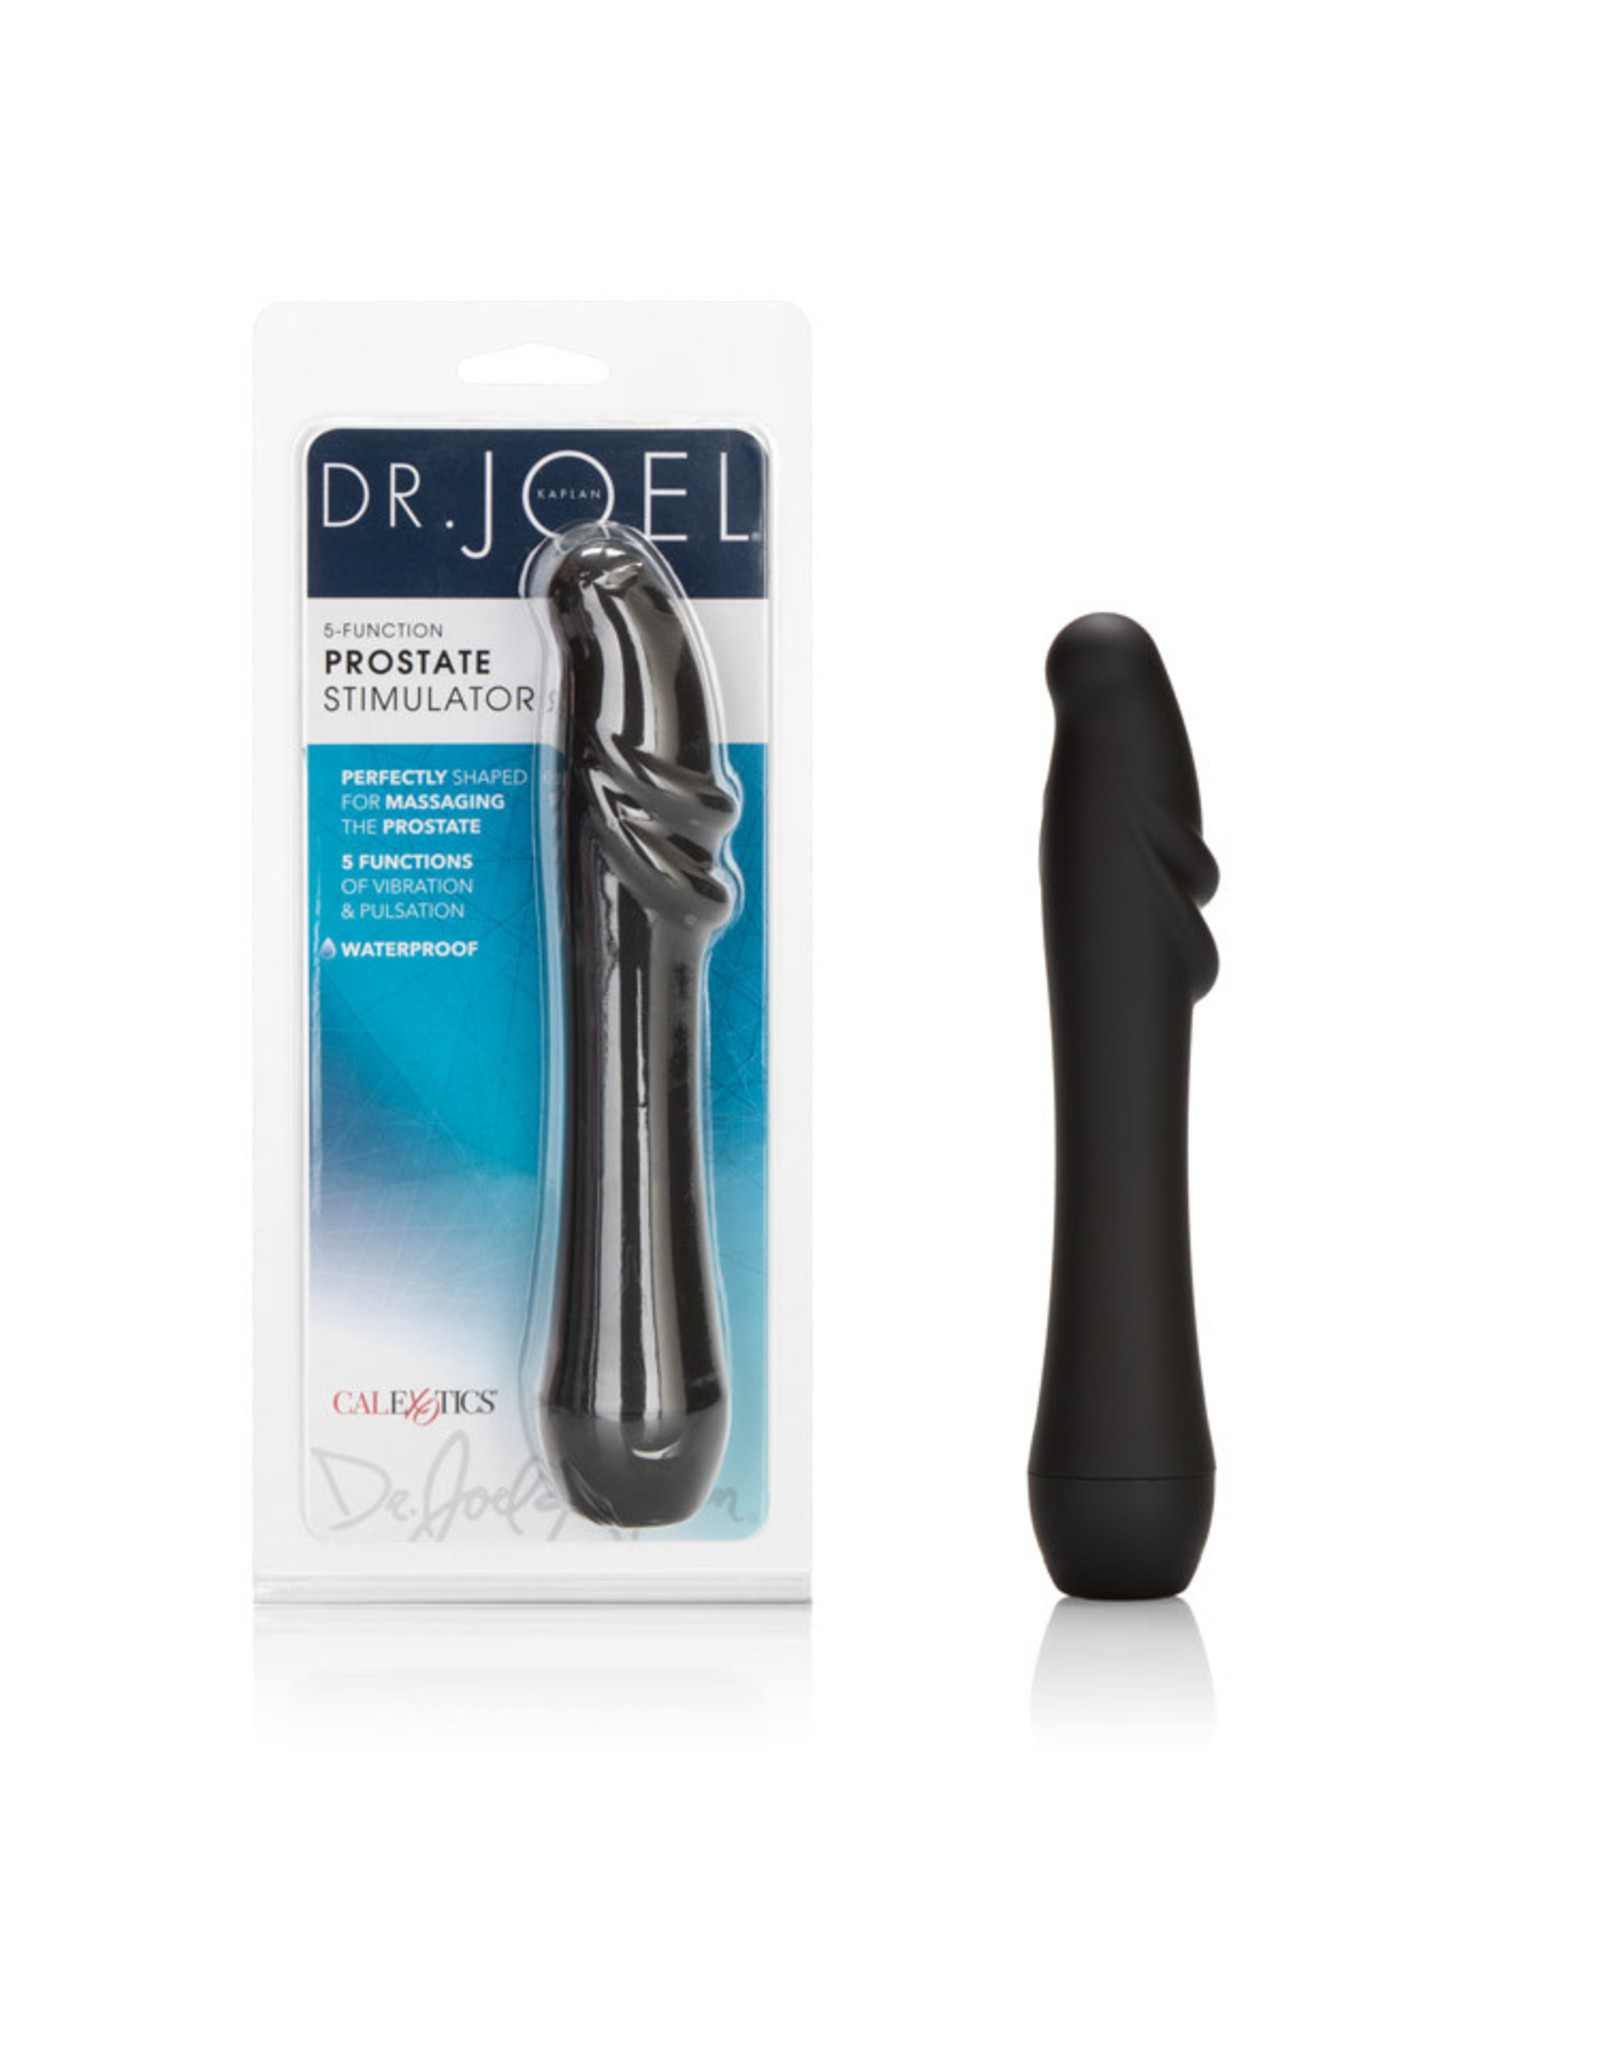 California Exotic Novelties Dr. Joel 5-Function Prostate Massager